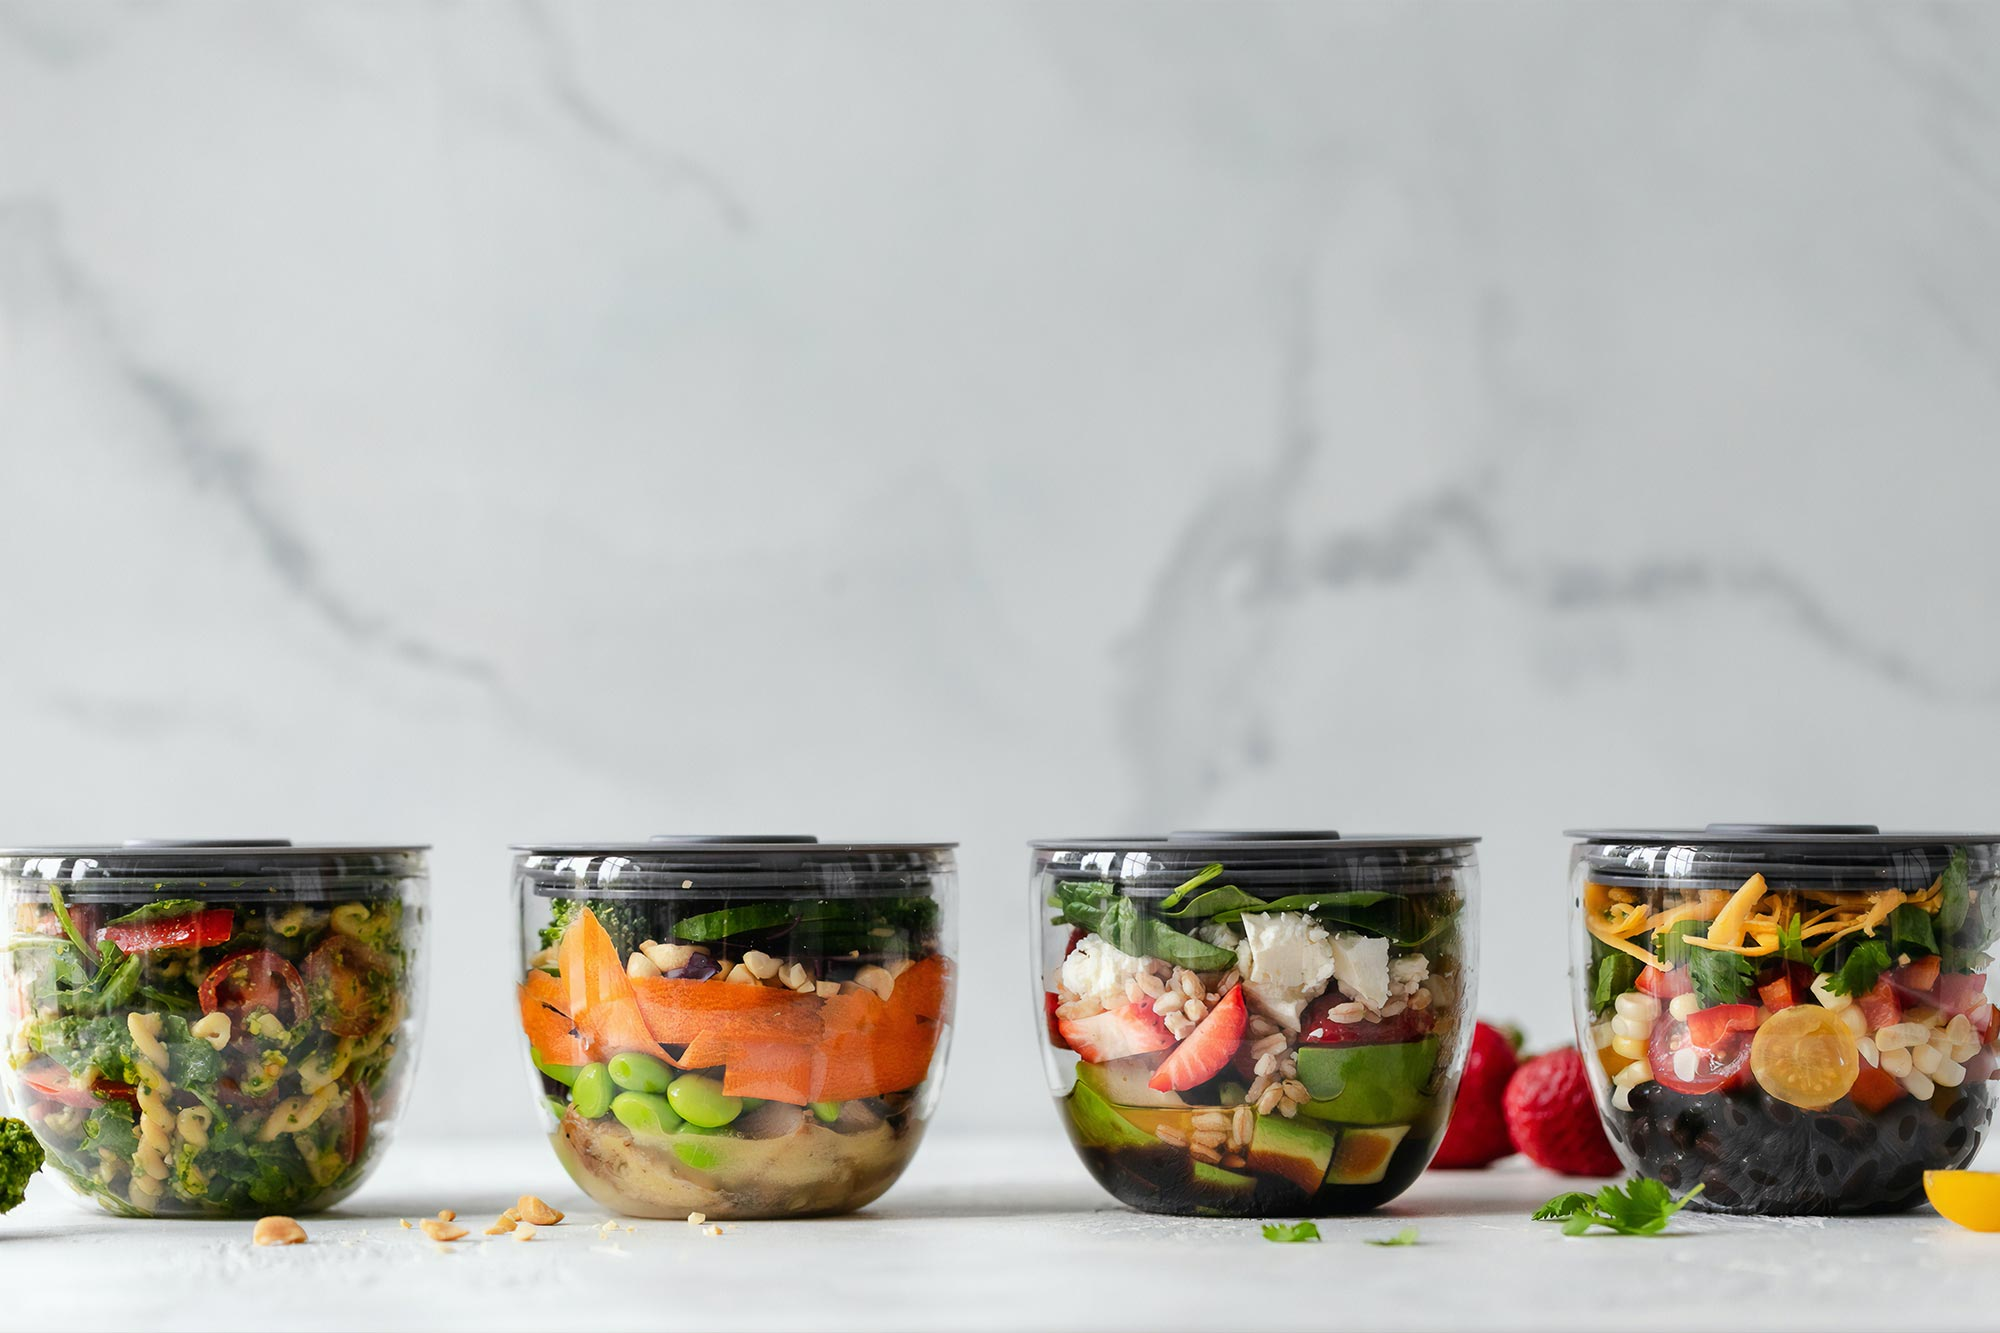 Zero Waste Essentials Swell Containers